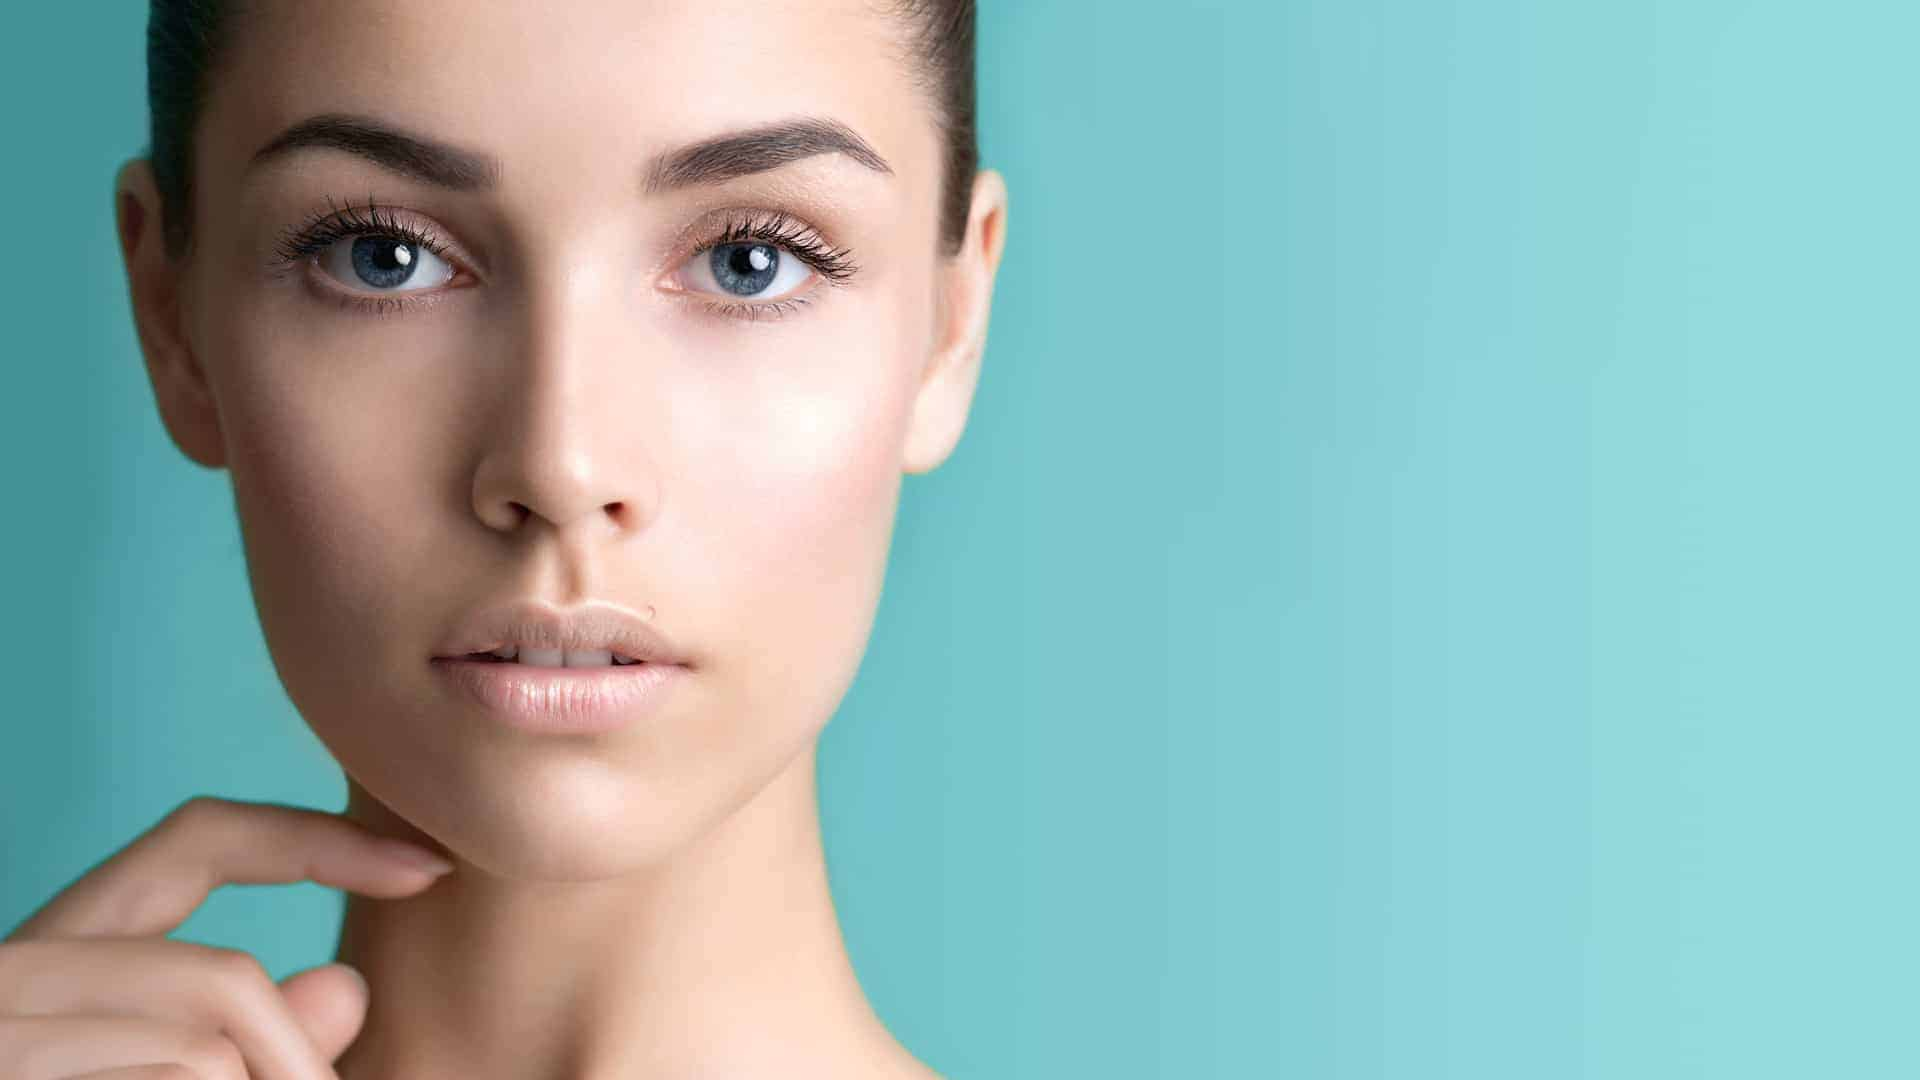 5 Natural Ways to Improve Skin Health